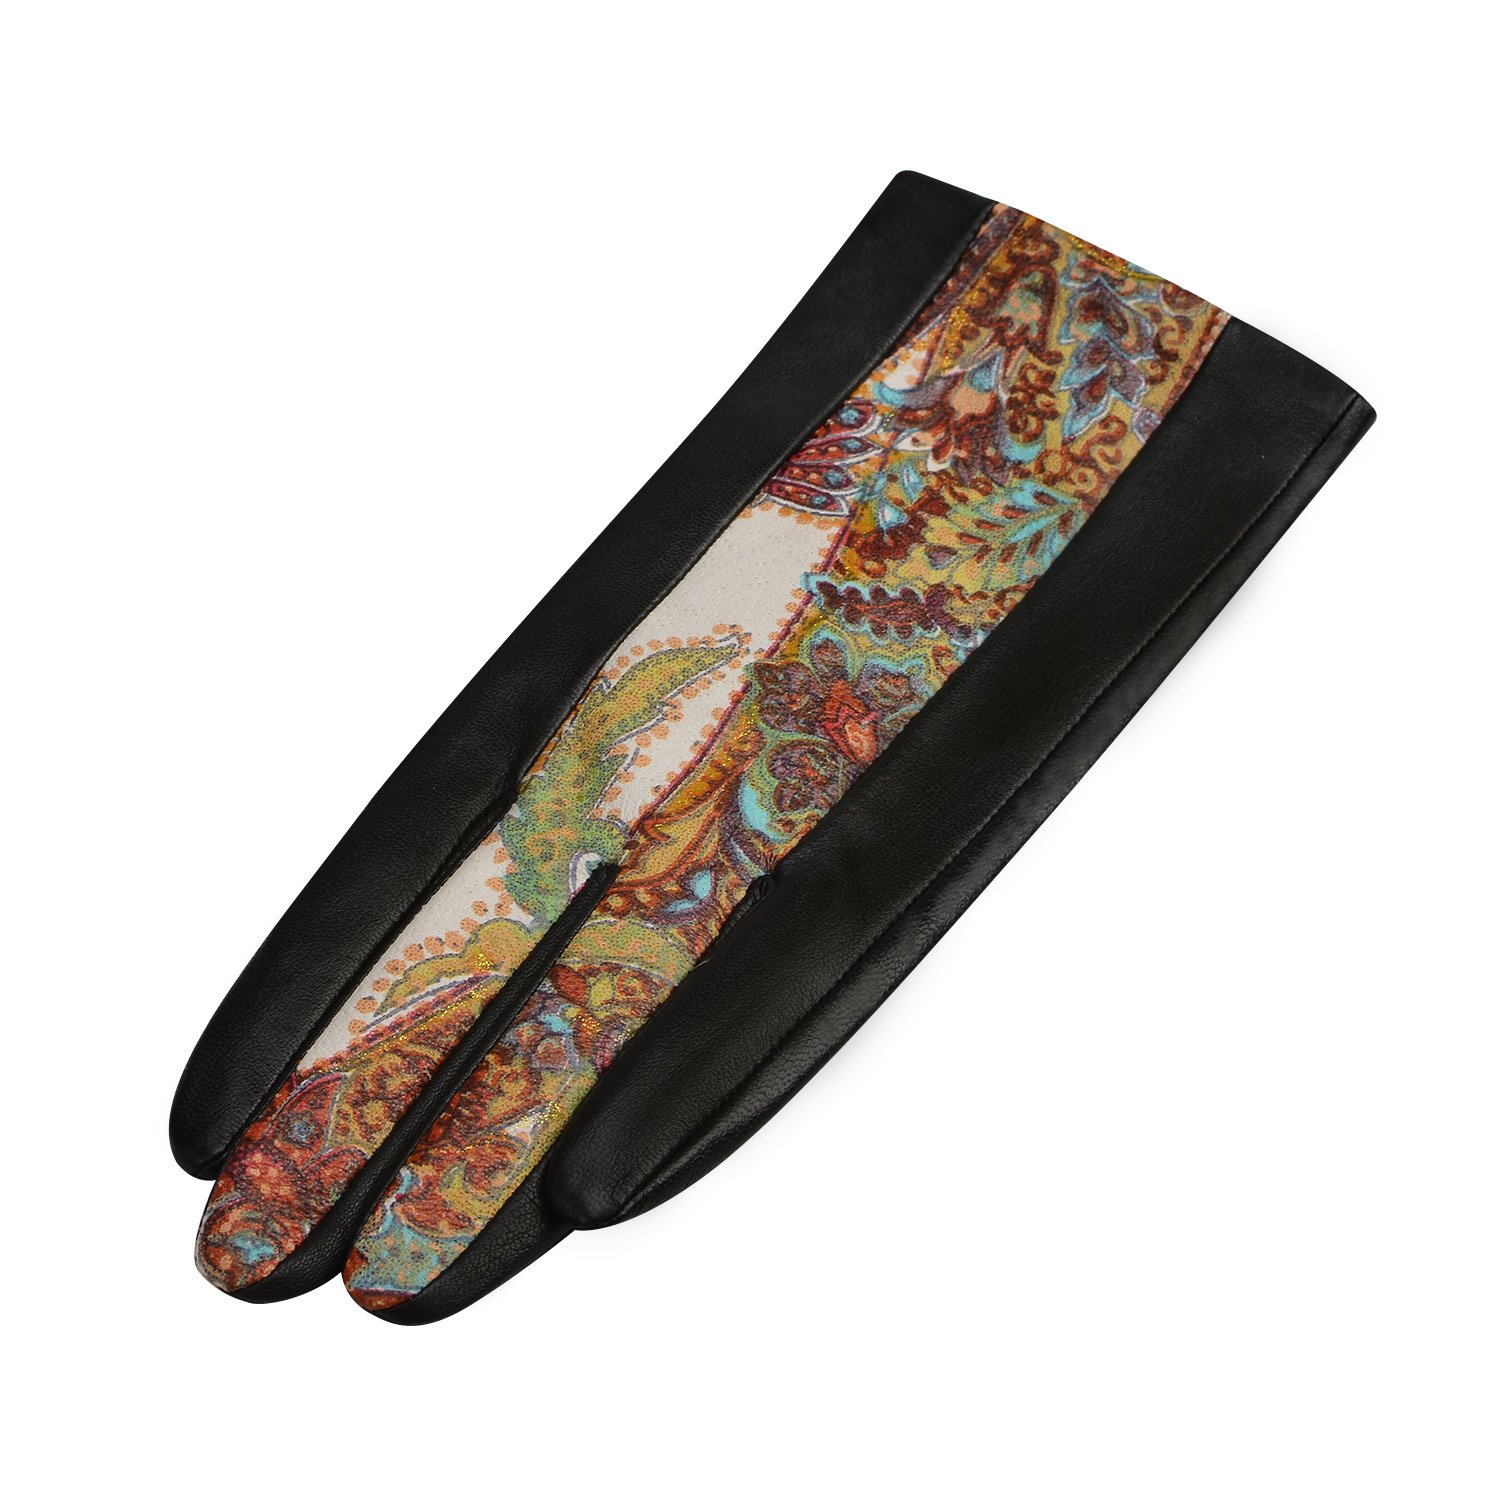 GSG Womens Novelty Paisley Italian Genuine Nappa Leather Gloves Lady Winter Gloves Full Palm Touchscreen 7 Black-Z by GSG (Image #4)